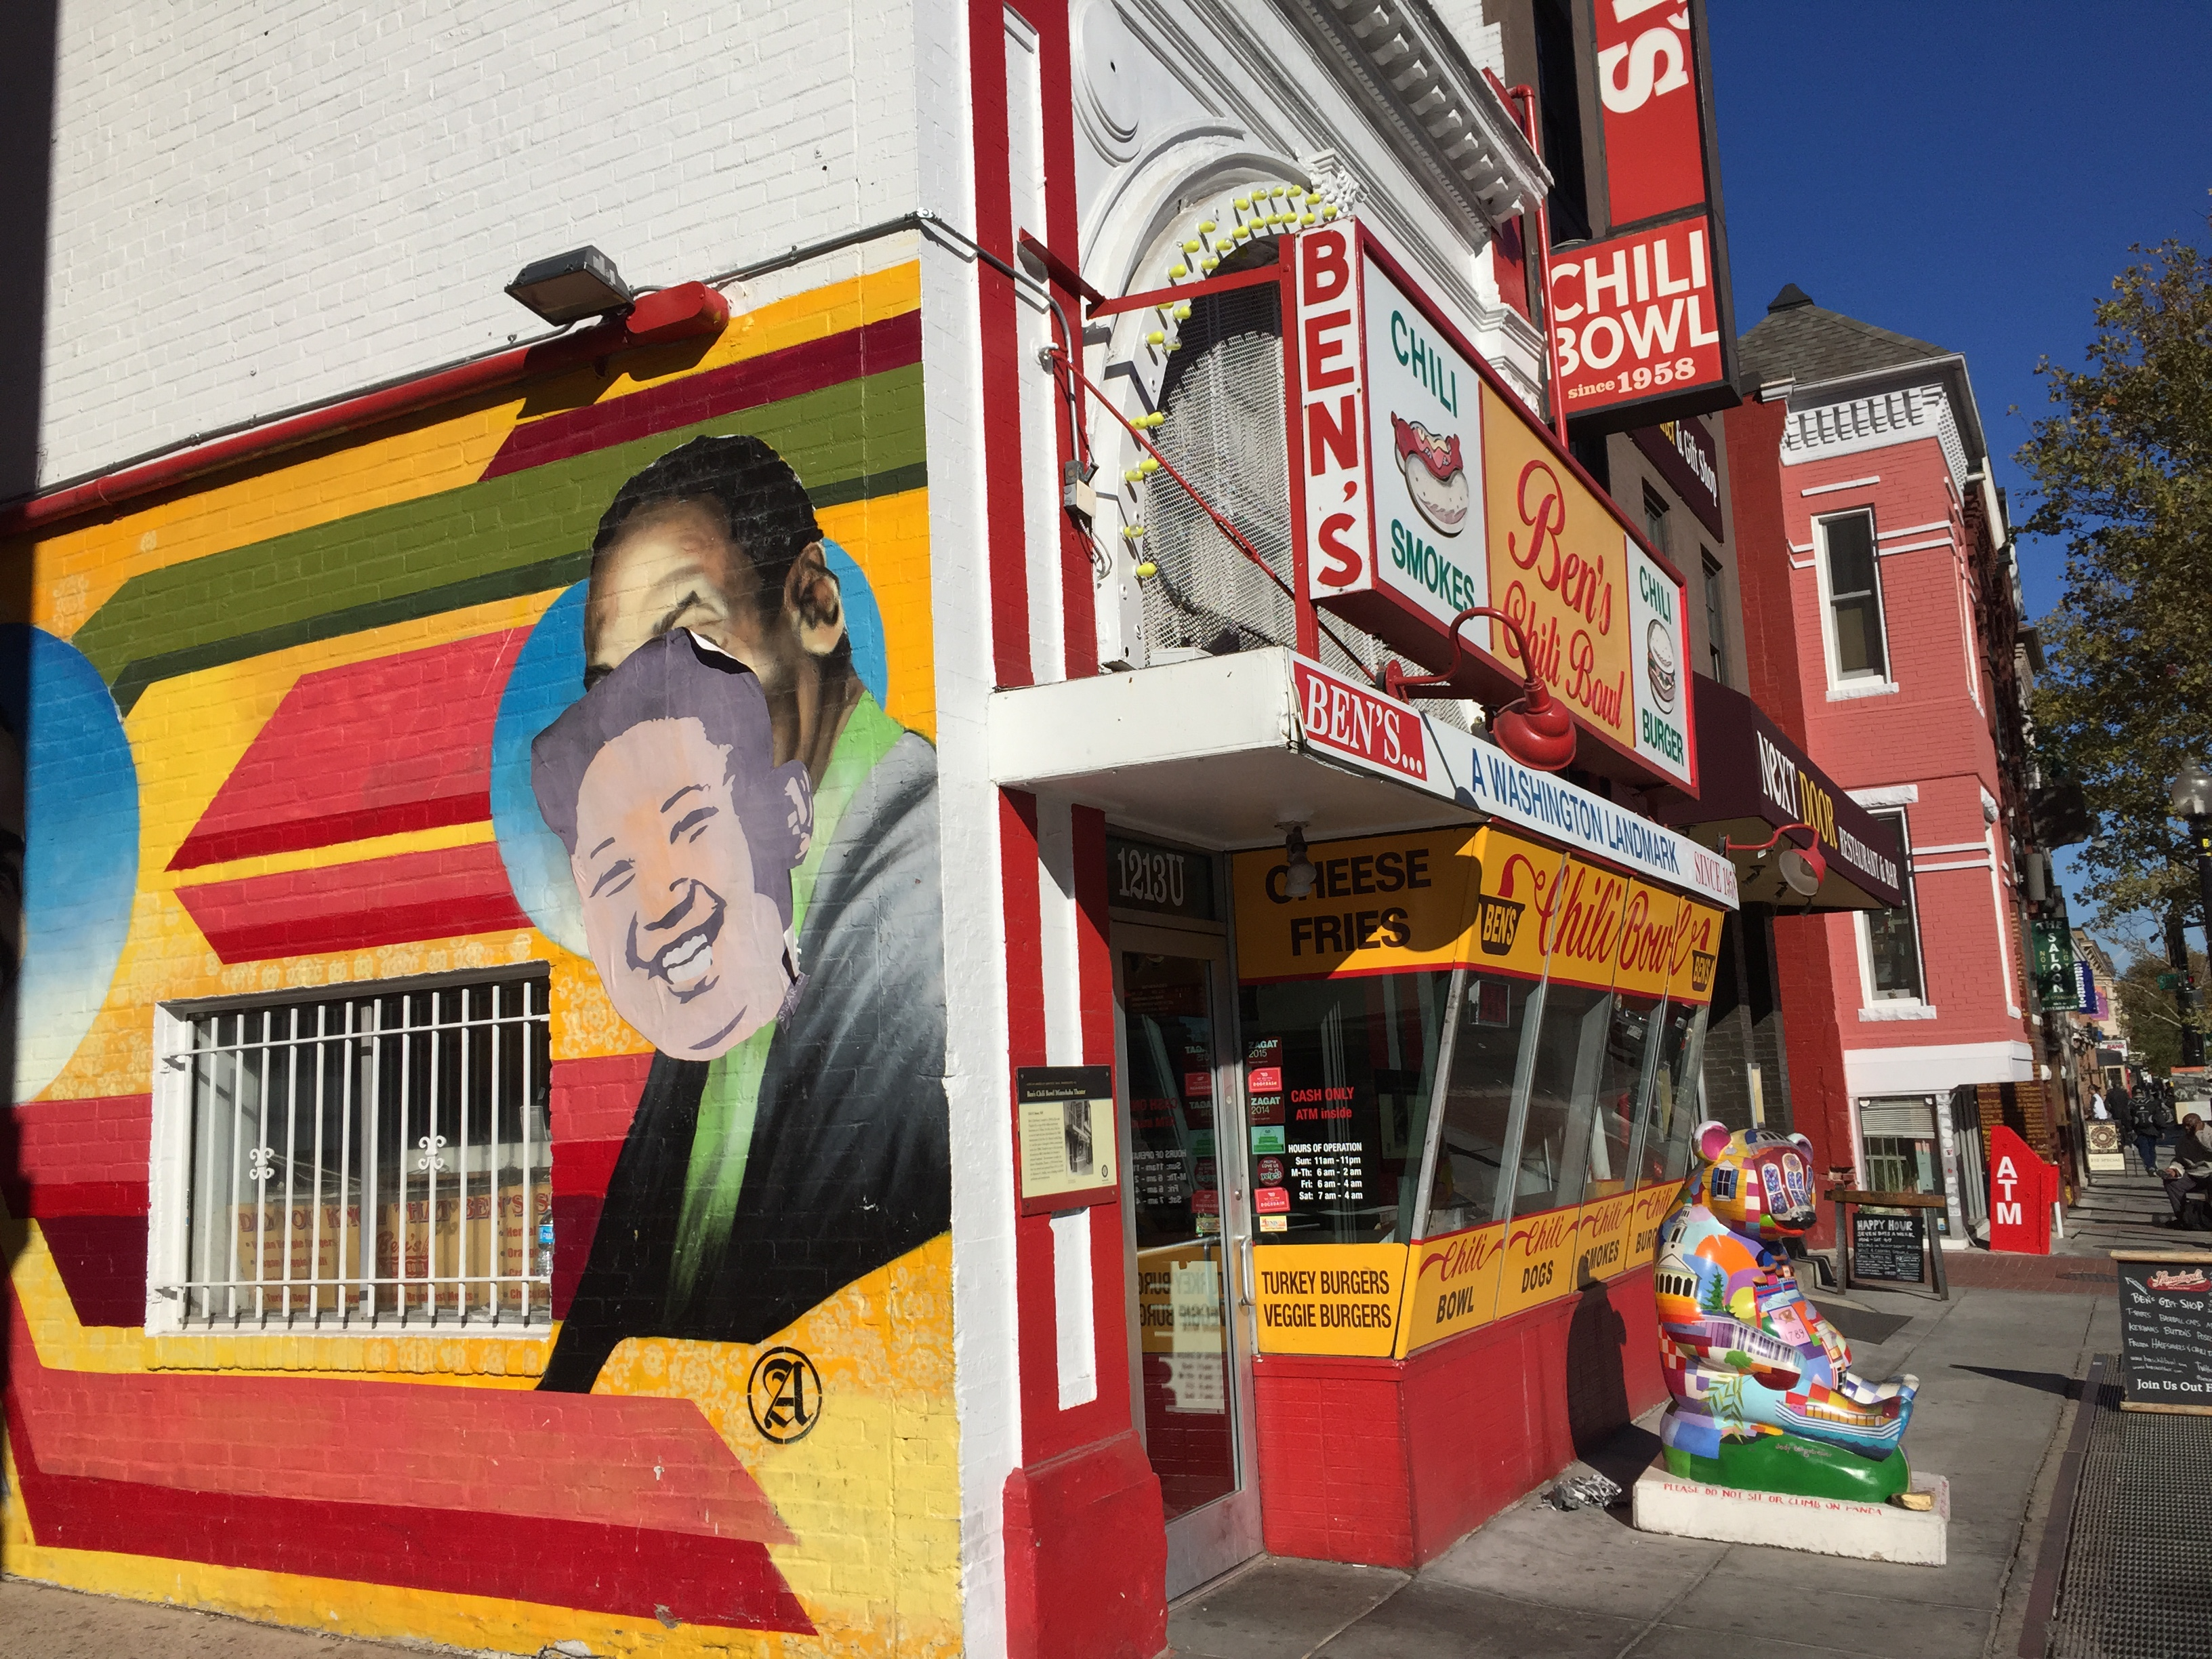 Ben's Chili Bowl's Bill Cosby mural defaced